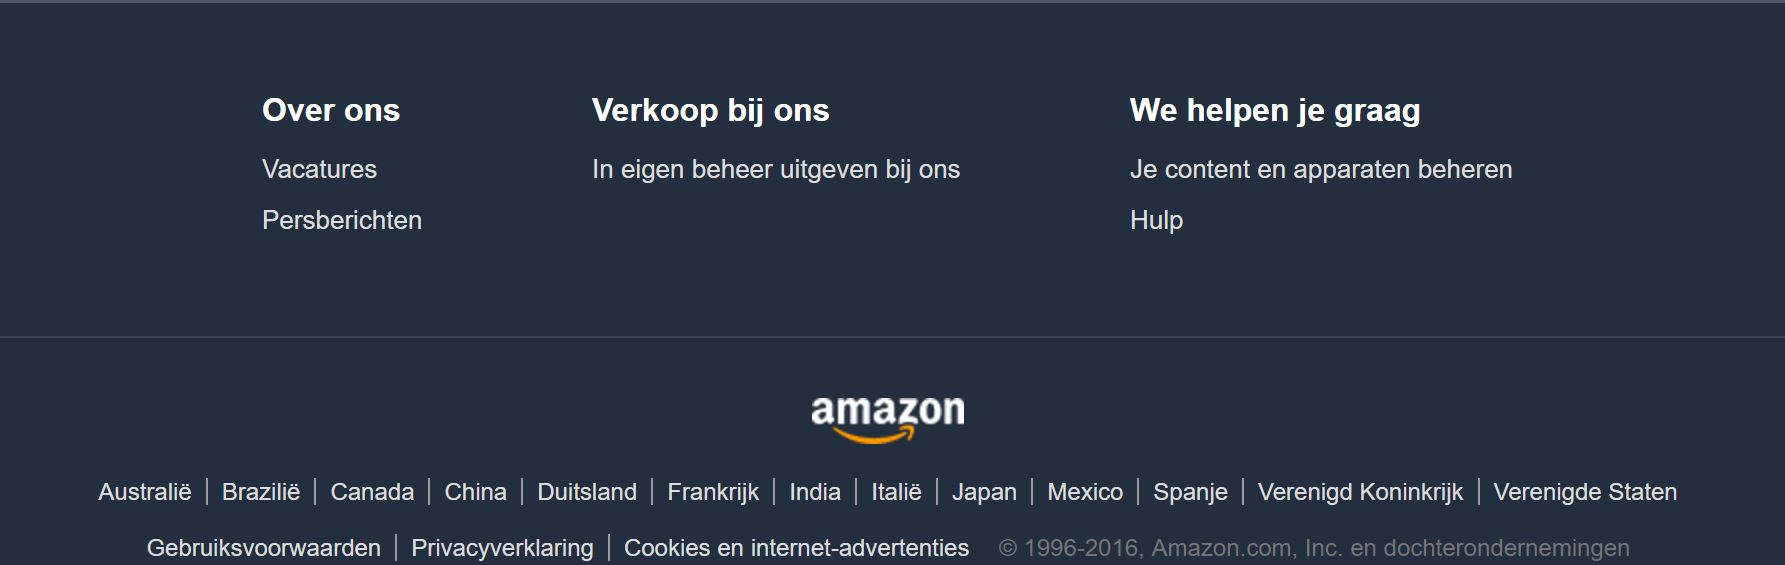 Amazon.nl footer